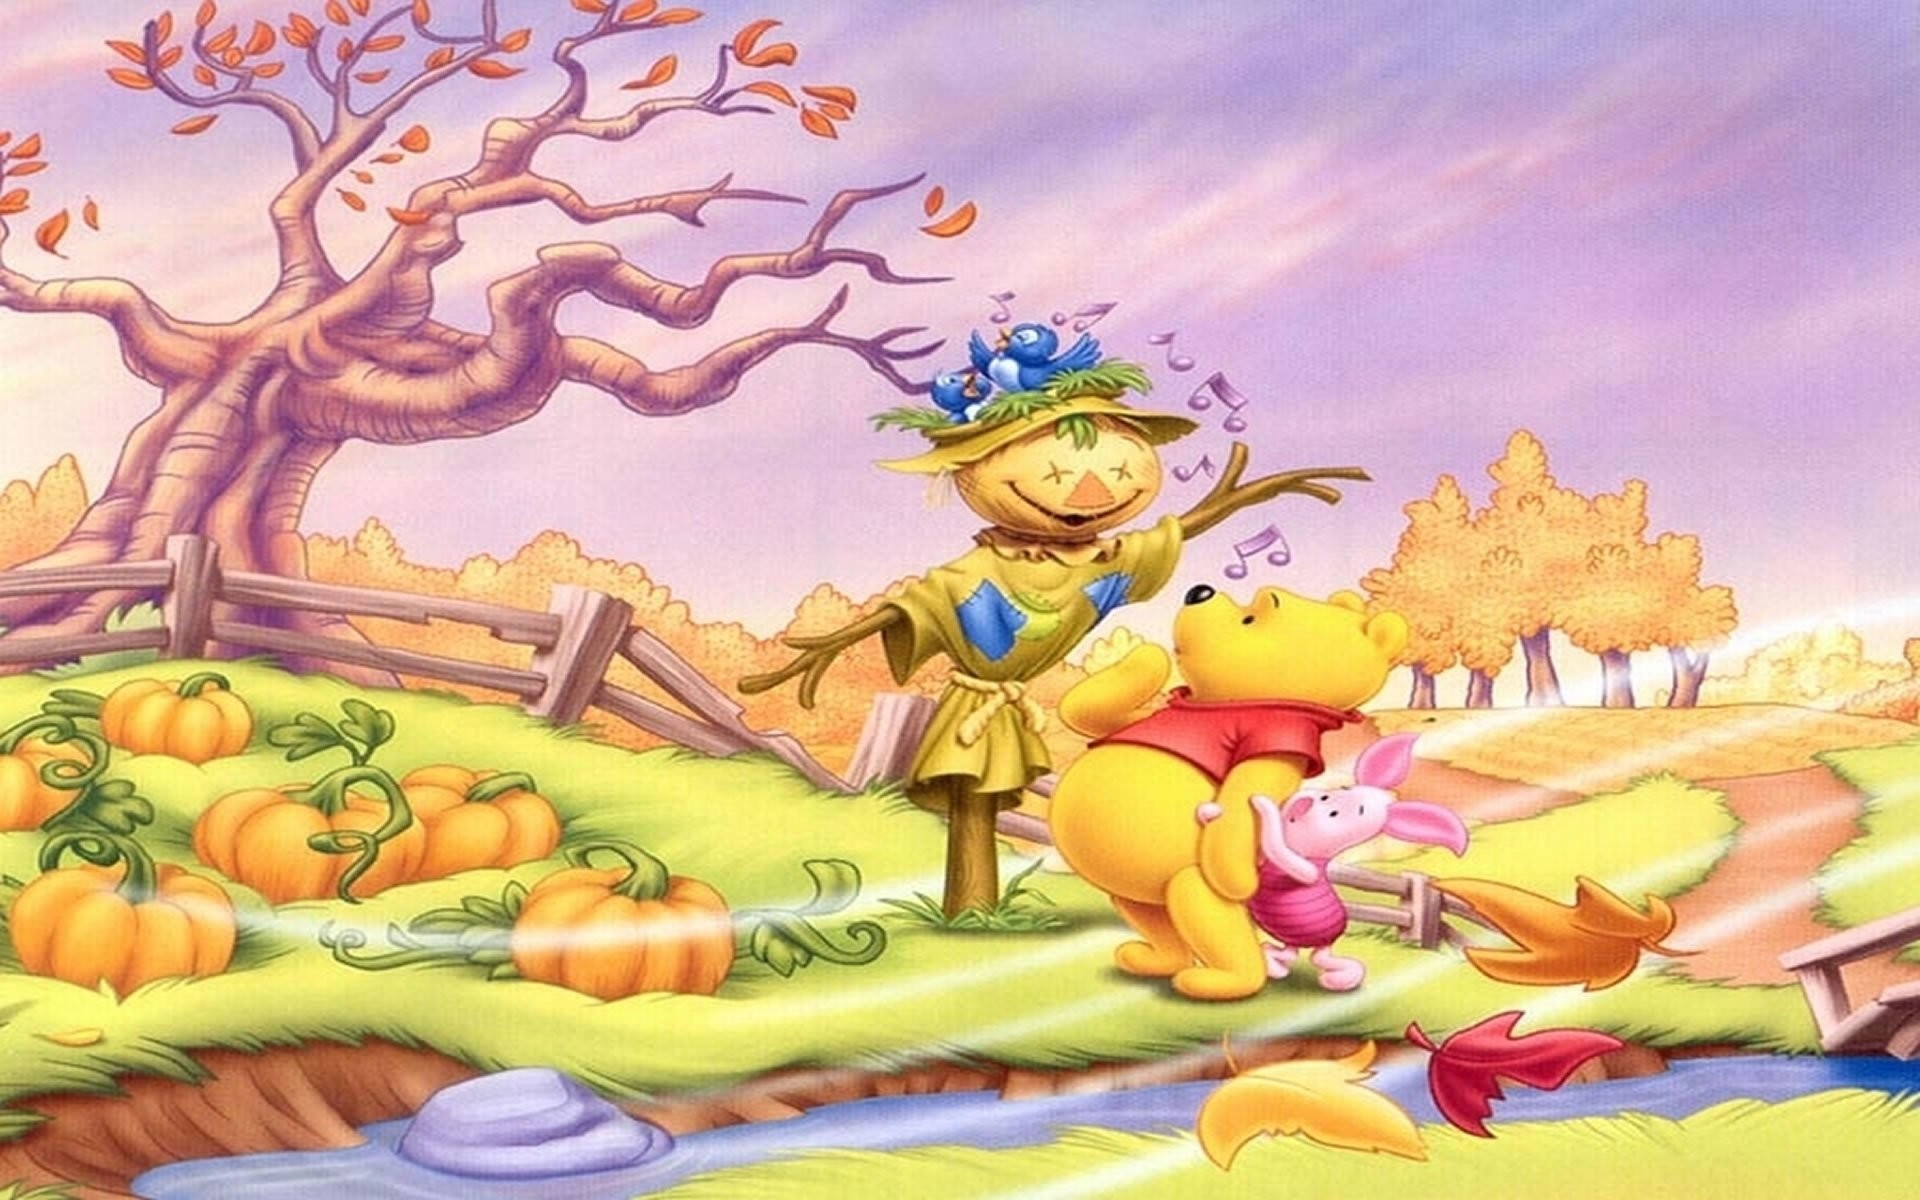 1920x1200 Winnie the Pooh · HD Wallpaper | Background Image ID:453905